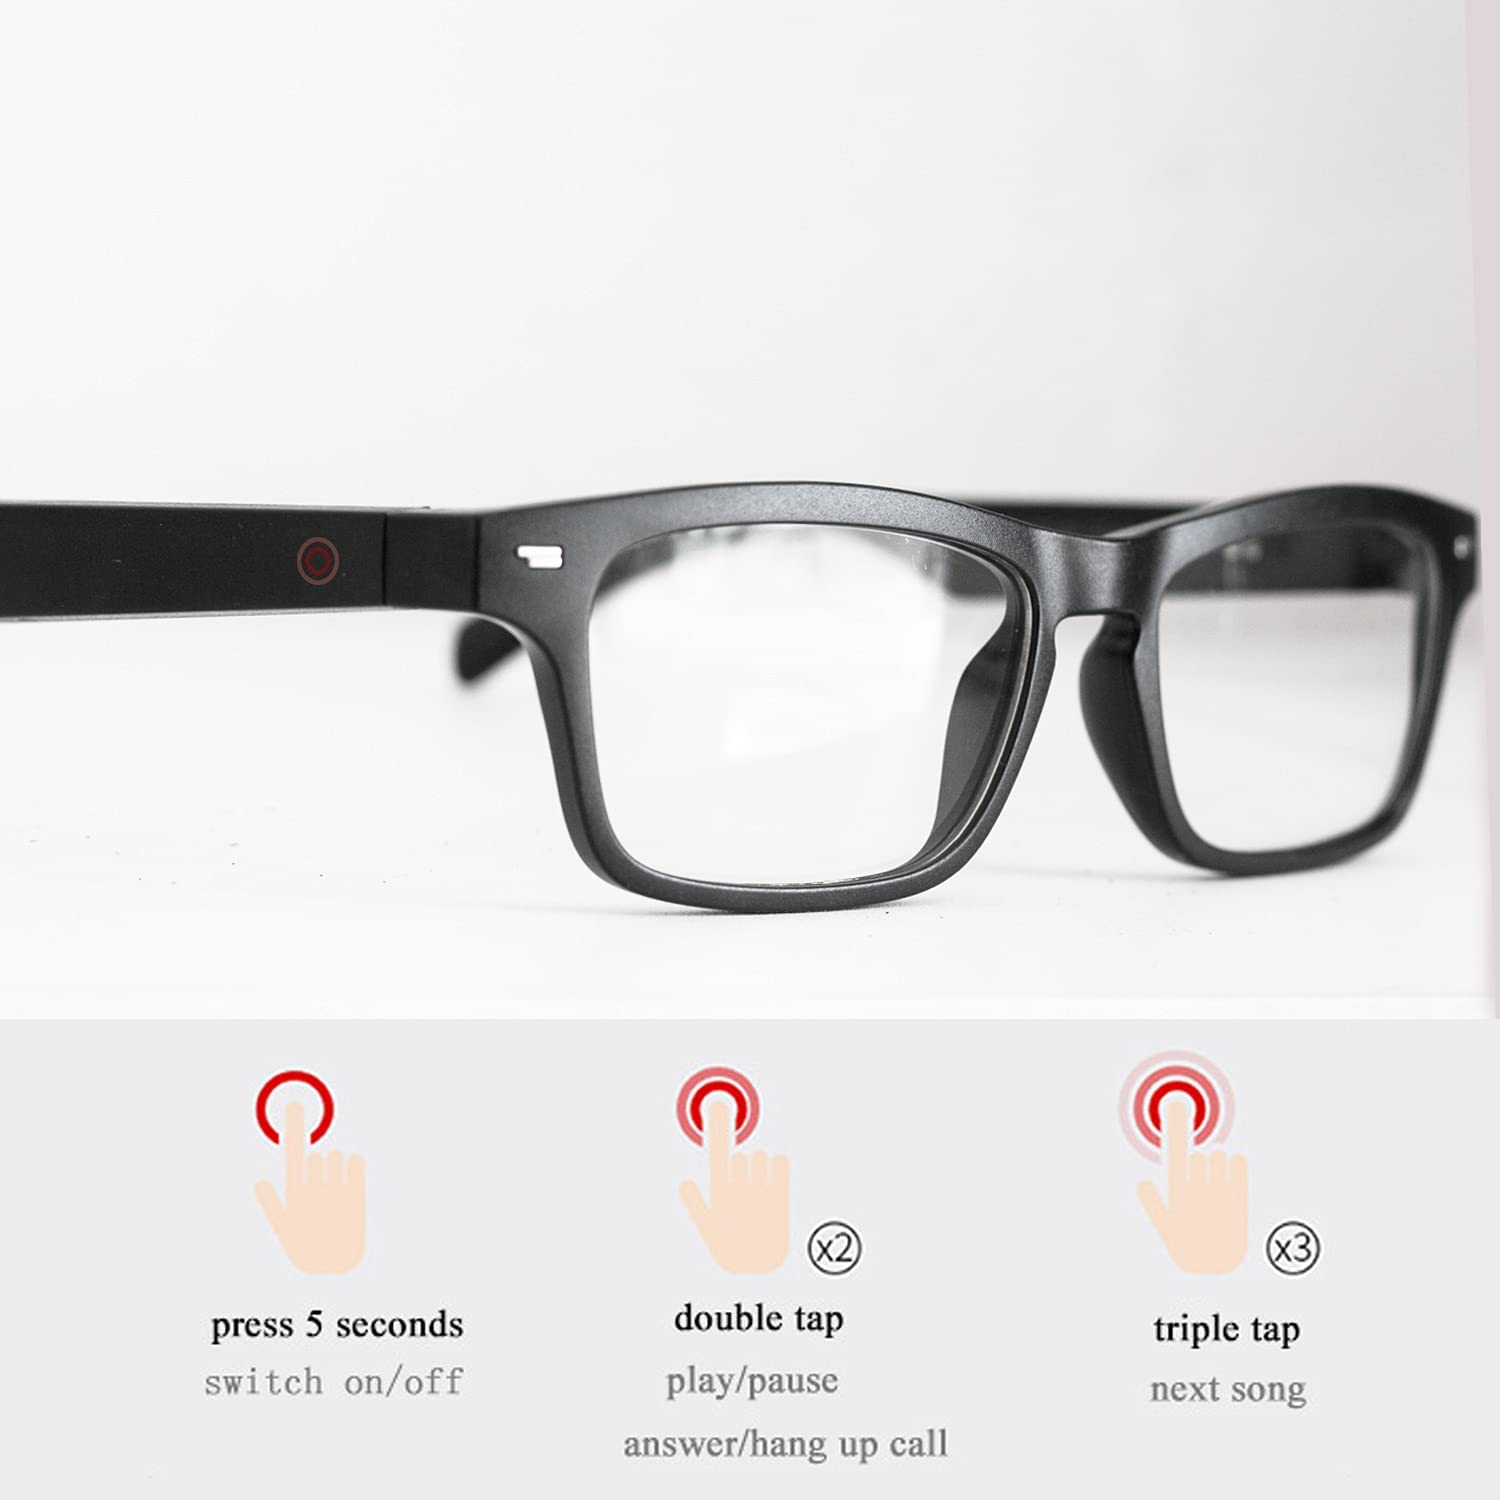 Bluetooth Wireless Smart Glasses, Blue Light Blocking Glasses, Music, Game, Reading and Calling Glasses for Work or Study ( Blue Light Blocking, Black)